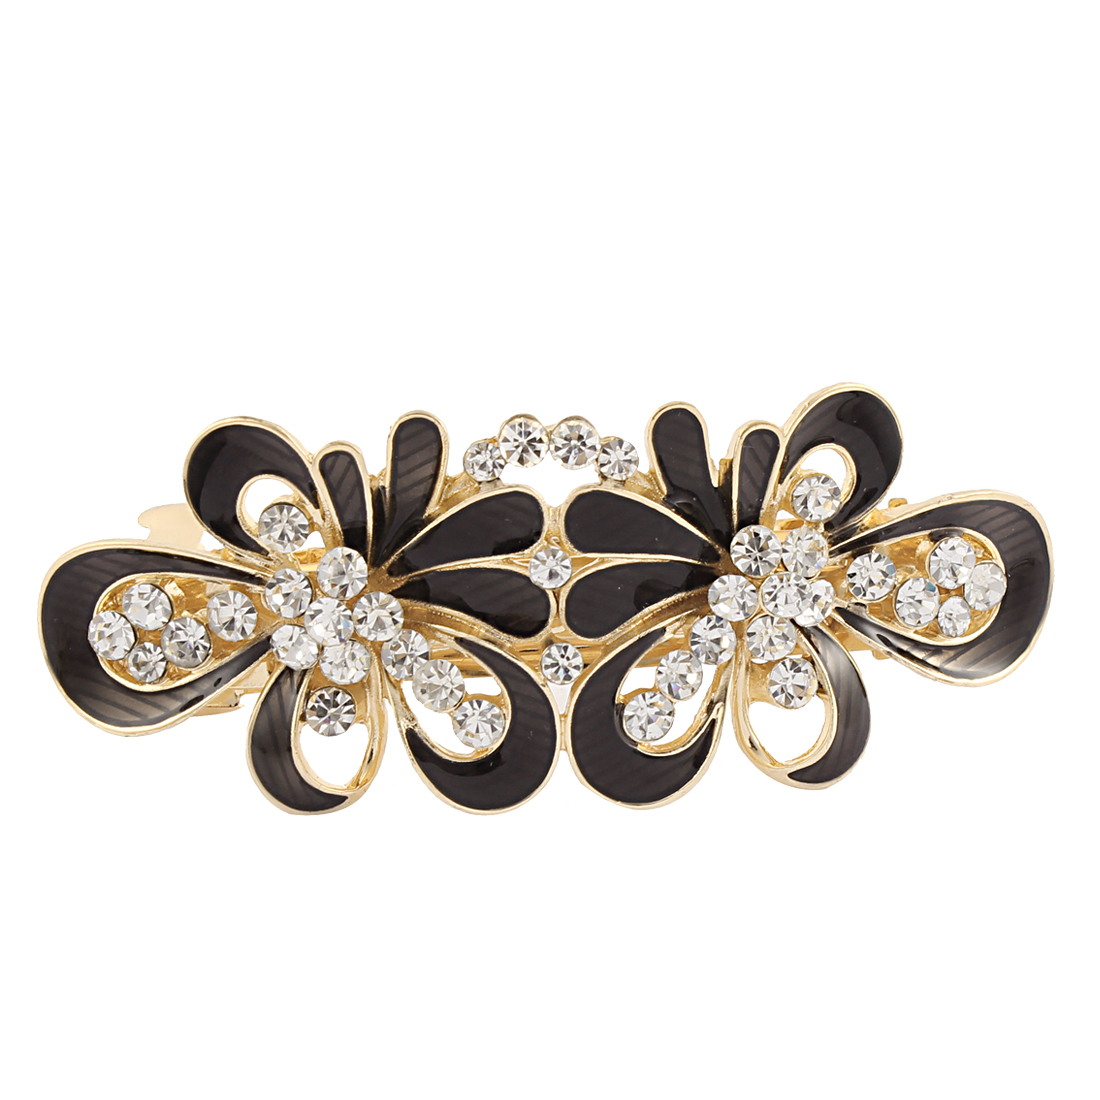 Women Rhinestone Detail Floral Shape Spring Loaded Hair Barrette Clip Black